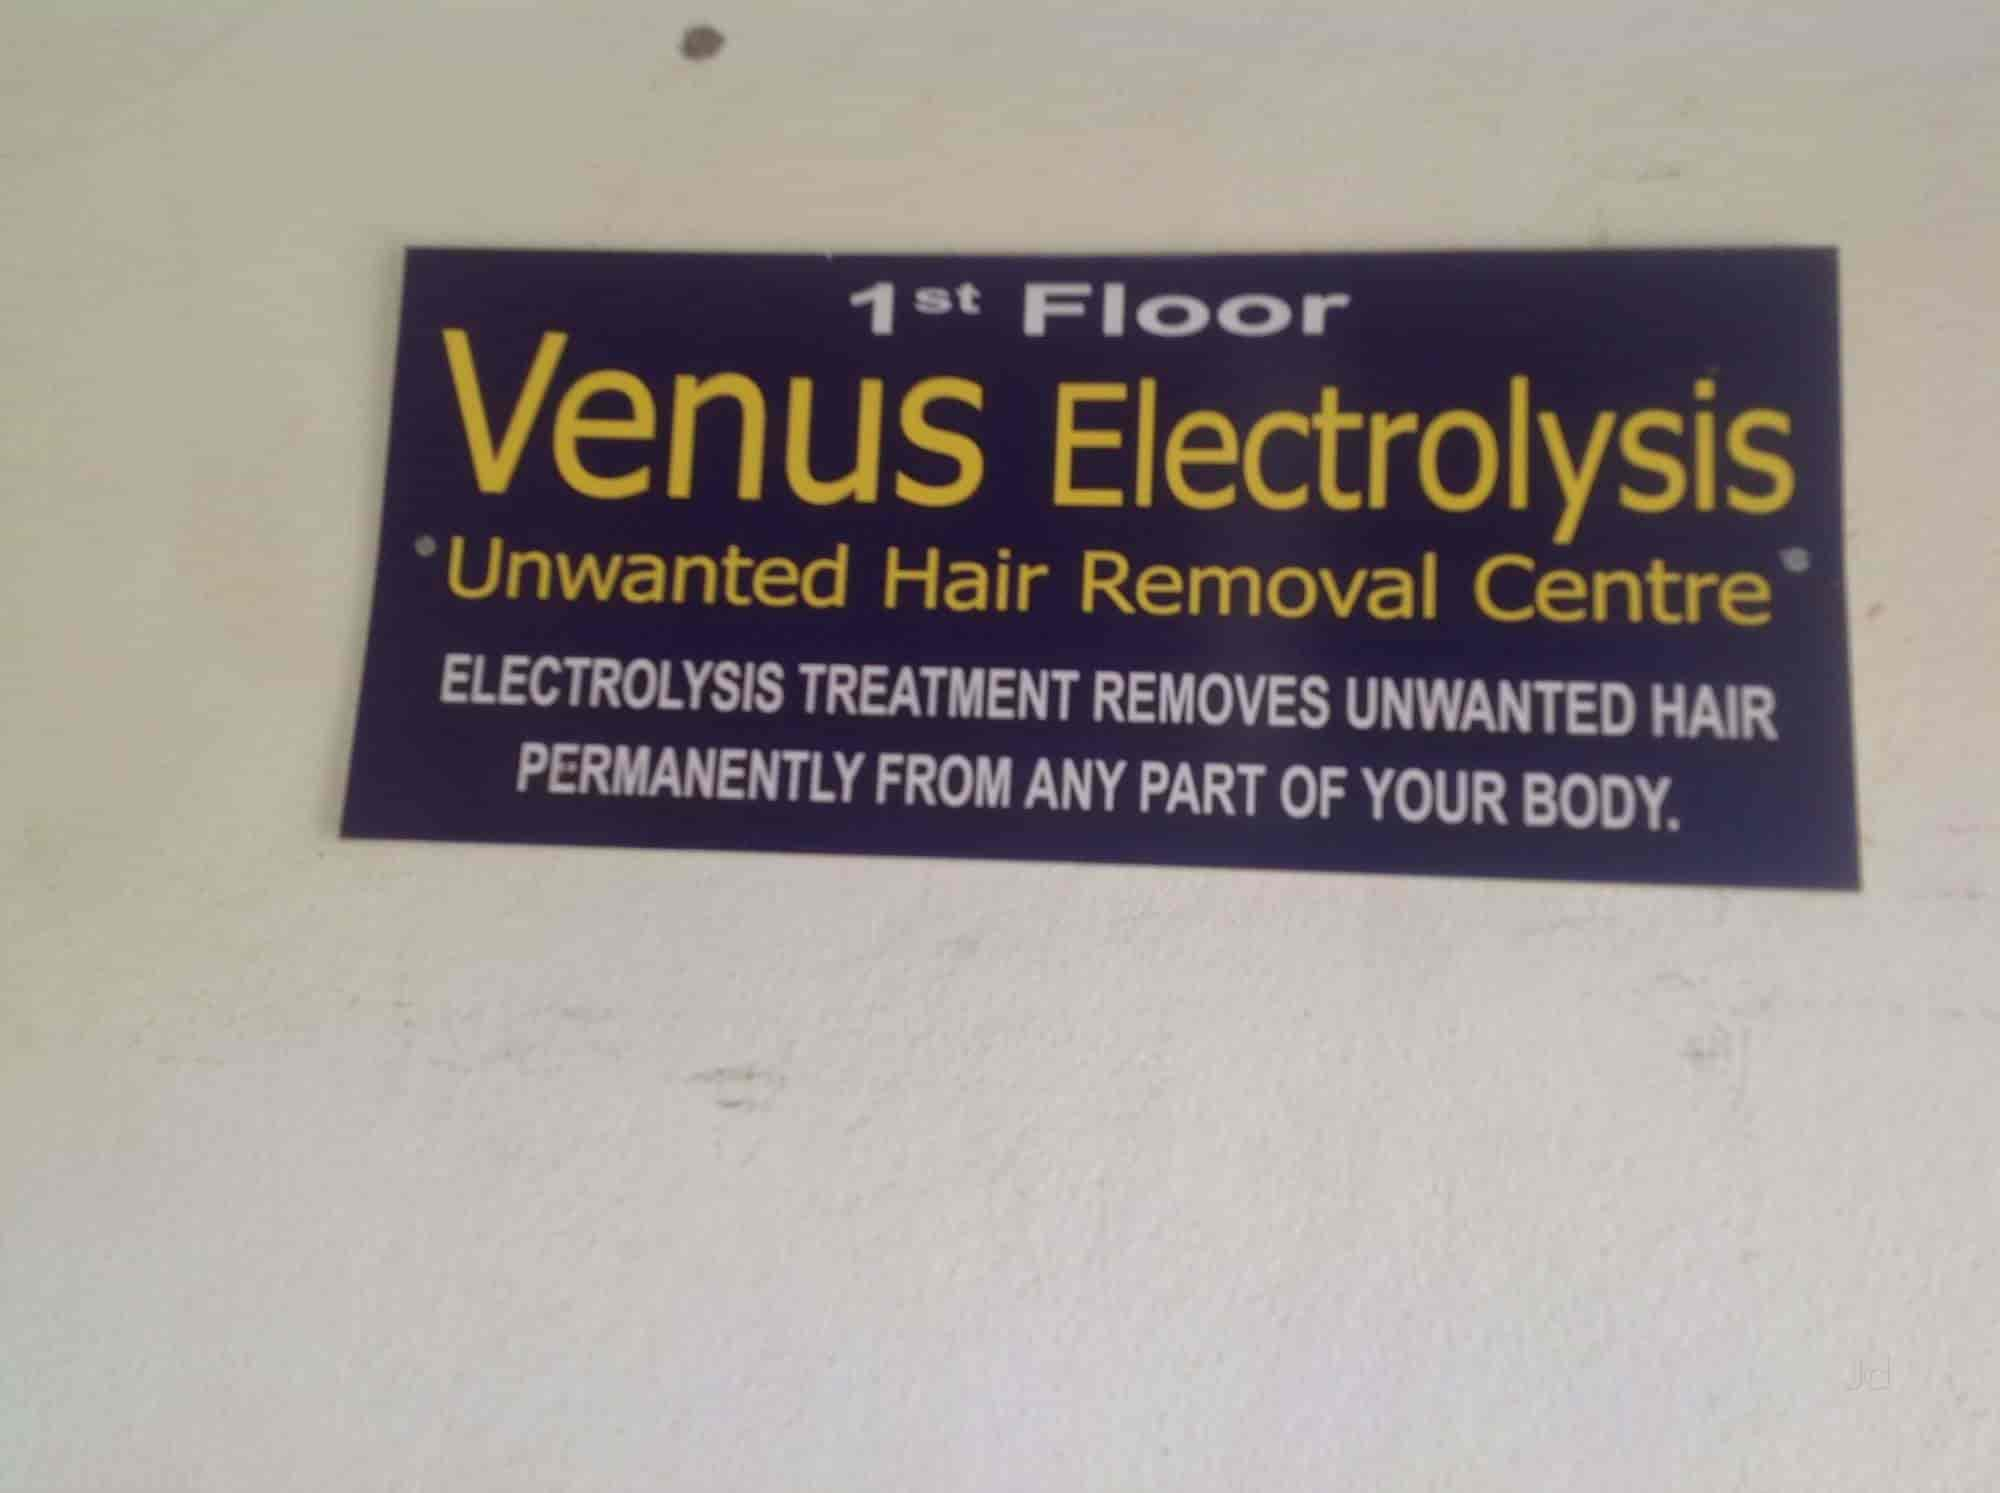 Venus Electrolysis, West Marredpally - Hair Treatment